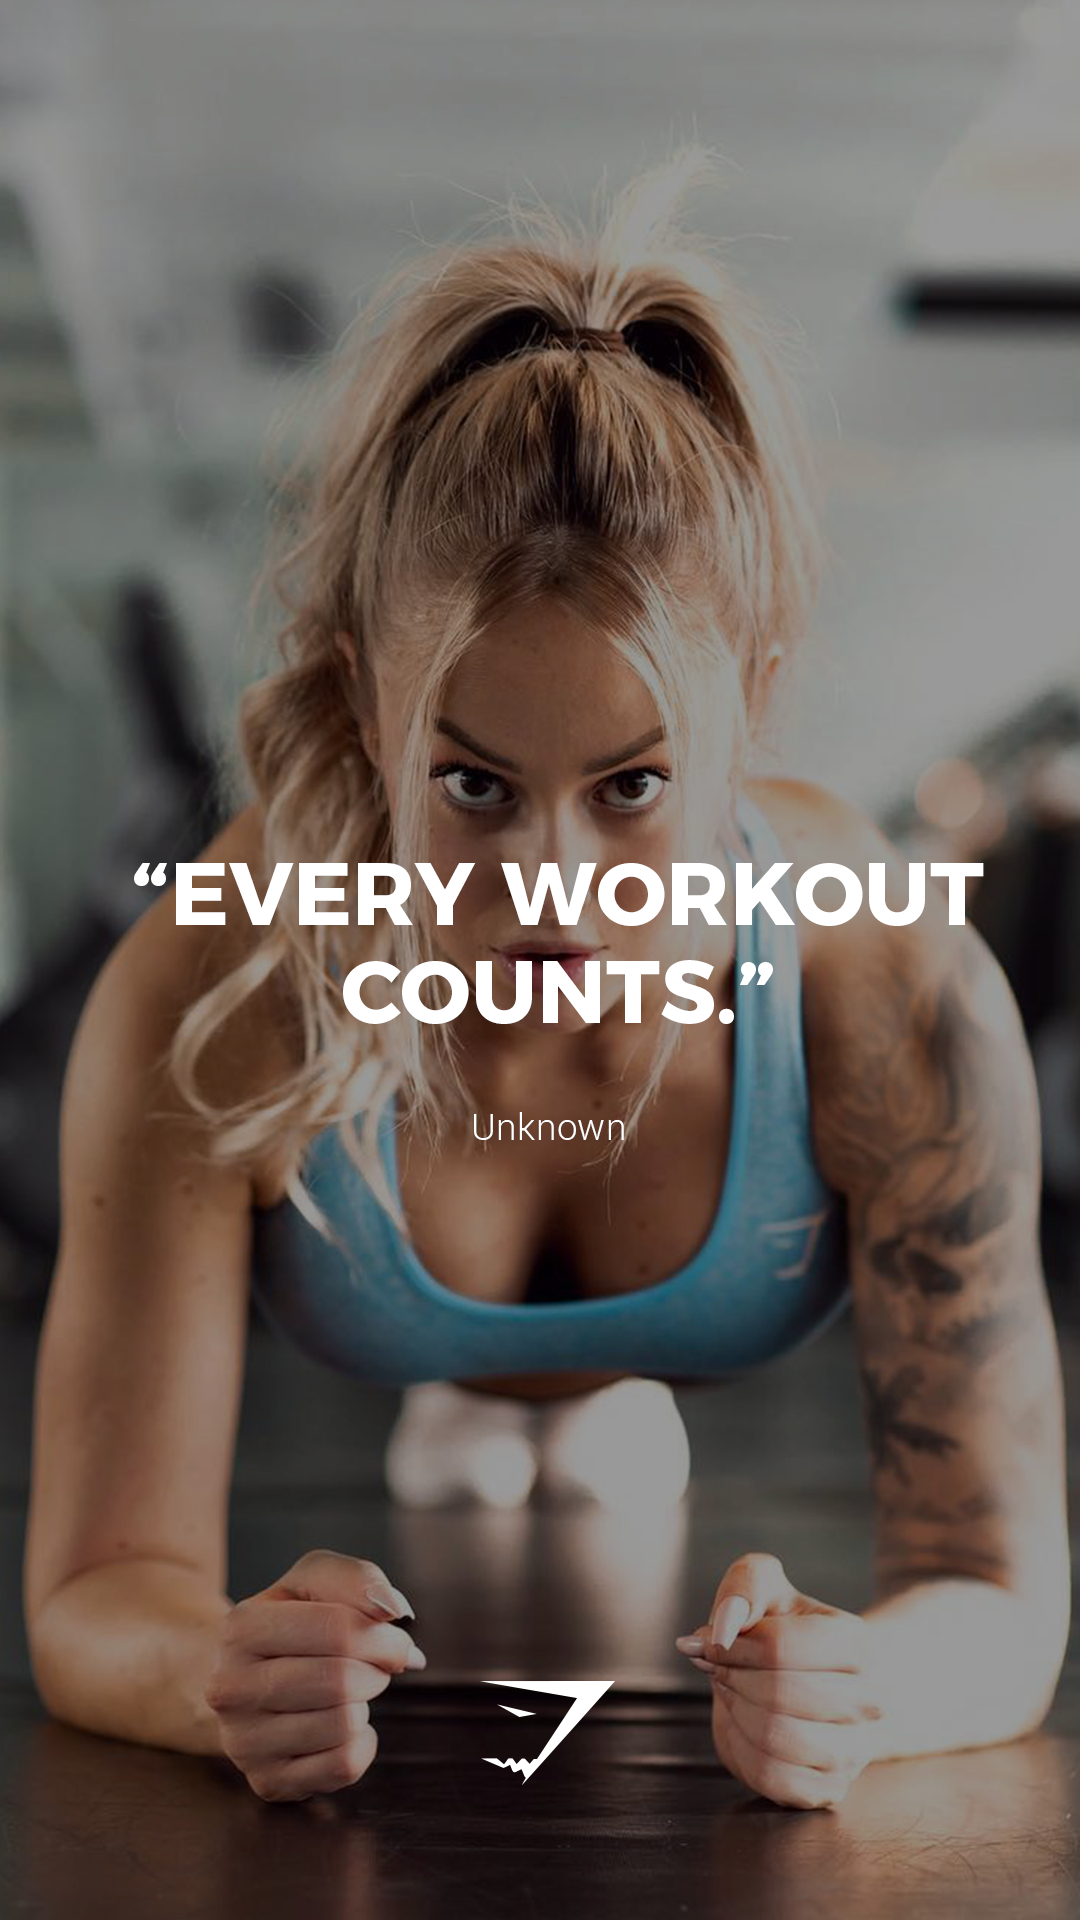 """""""Every workout counts."""" - Gymshark. #Gymshark #Quotes #Motivational #Inspiration #Motivate #Phrases..."""